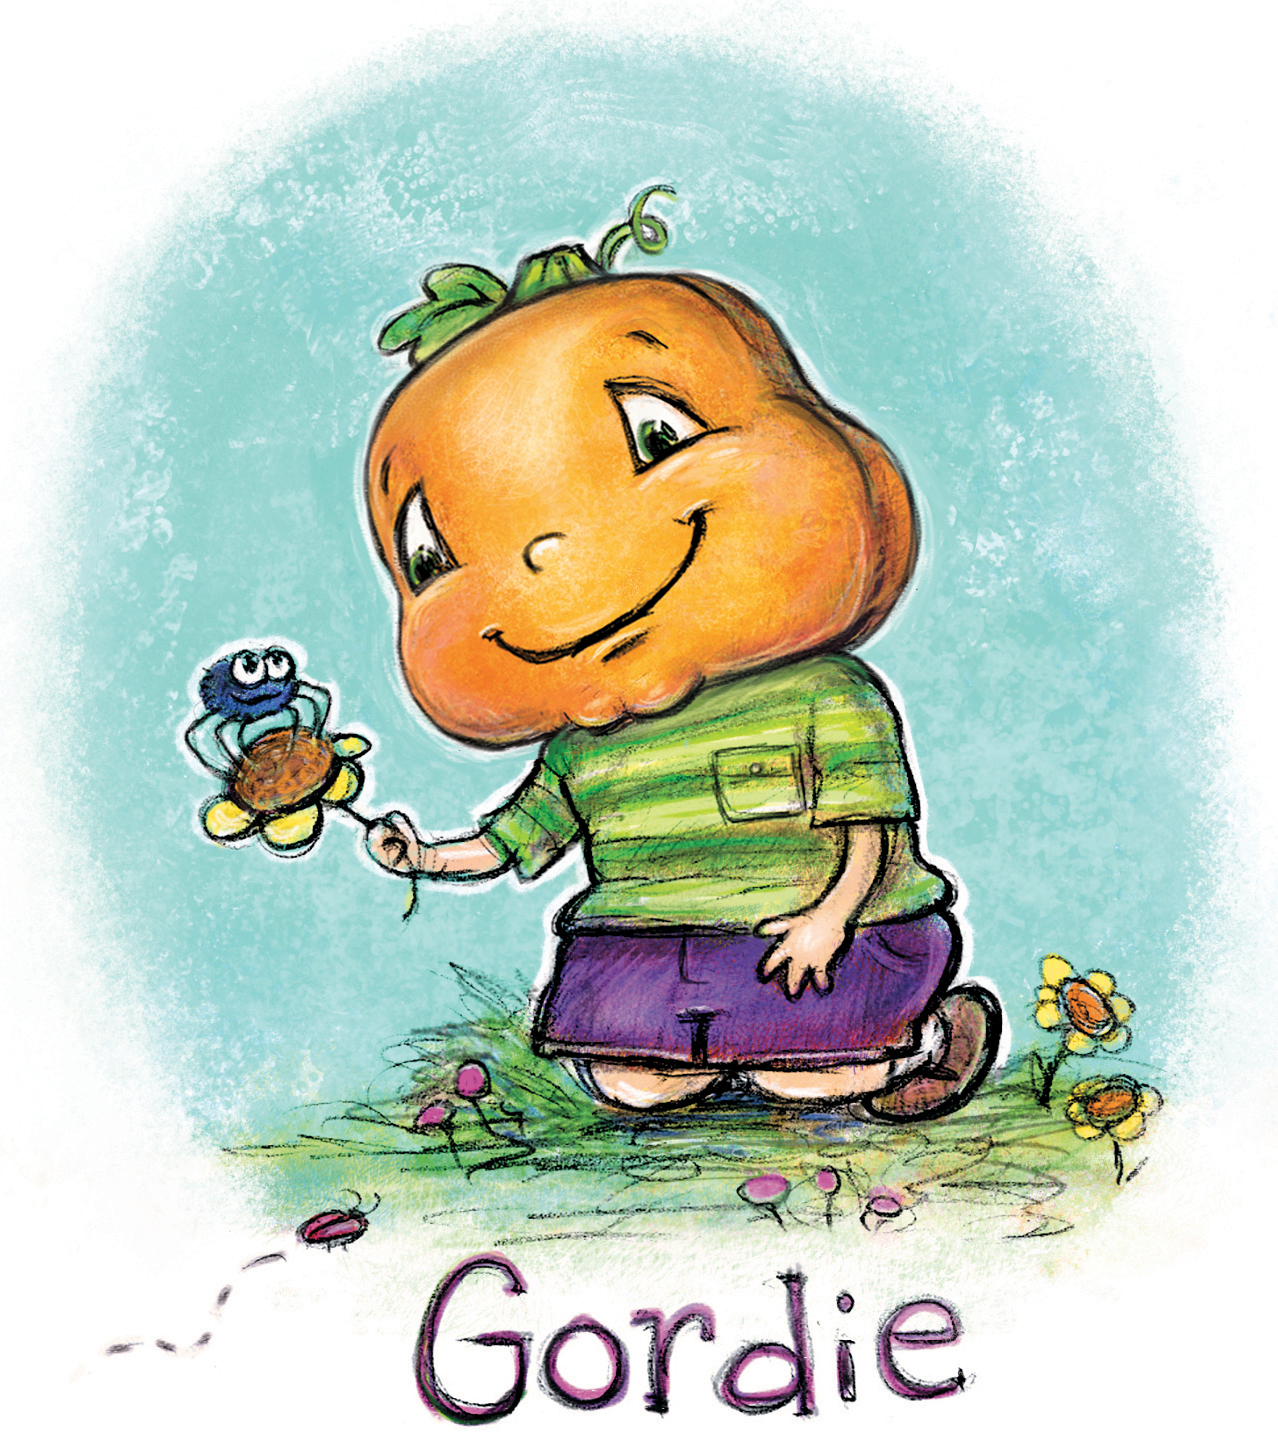 gordie-color2WEB.jpg